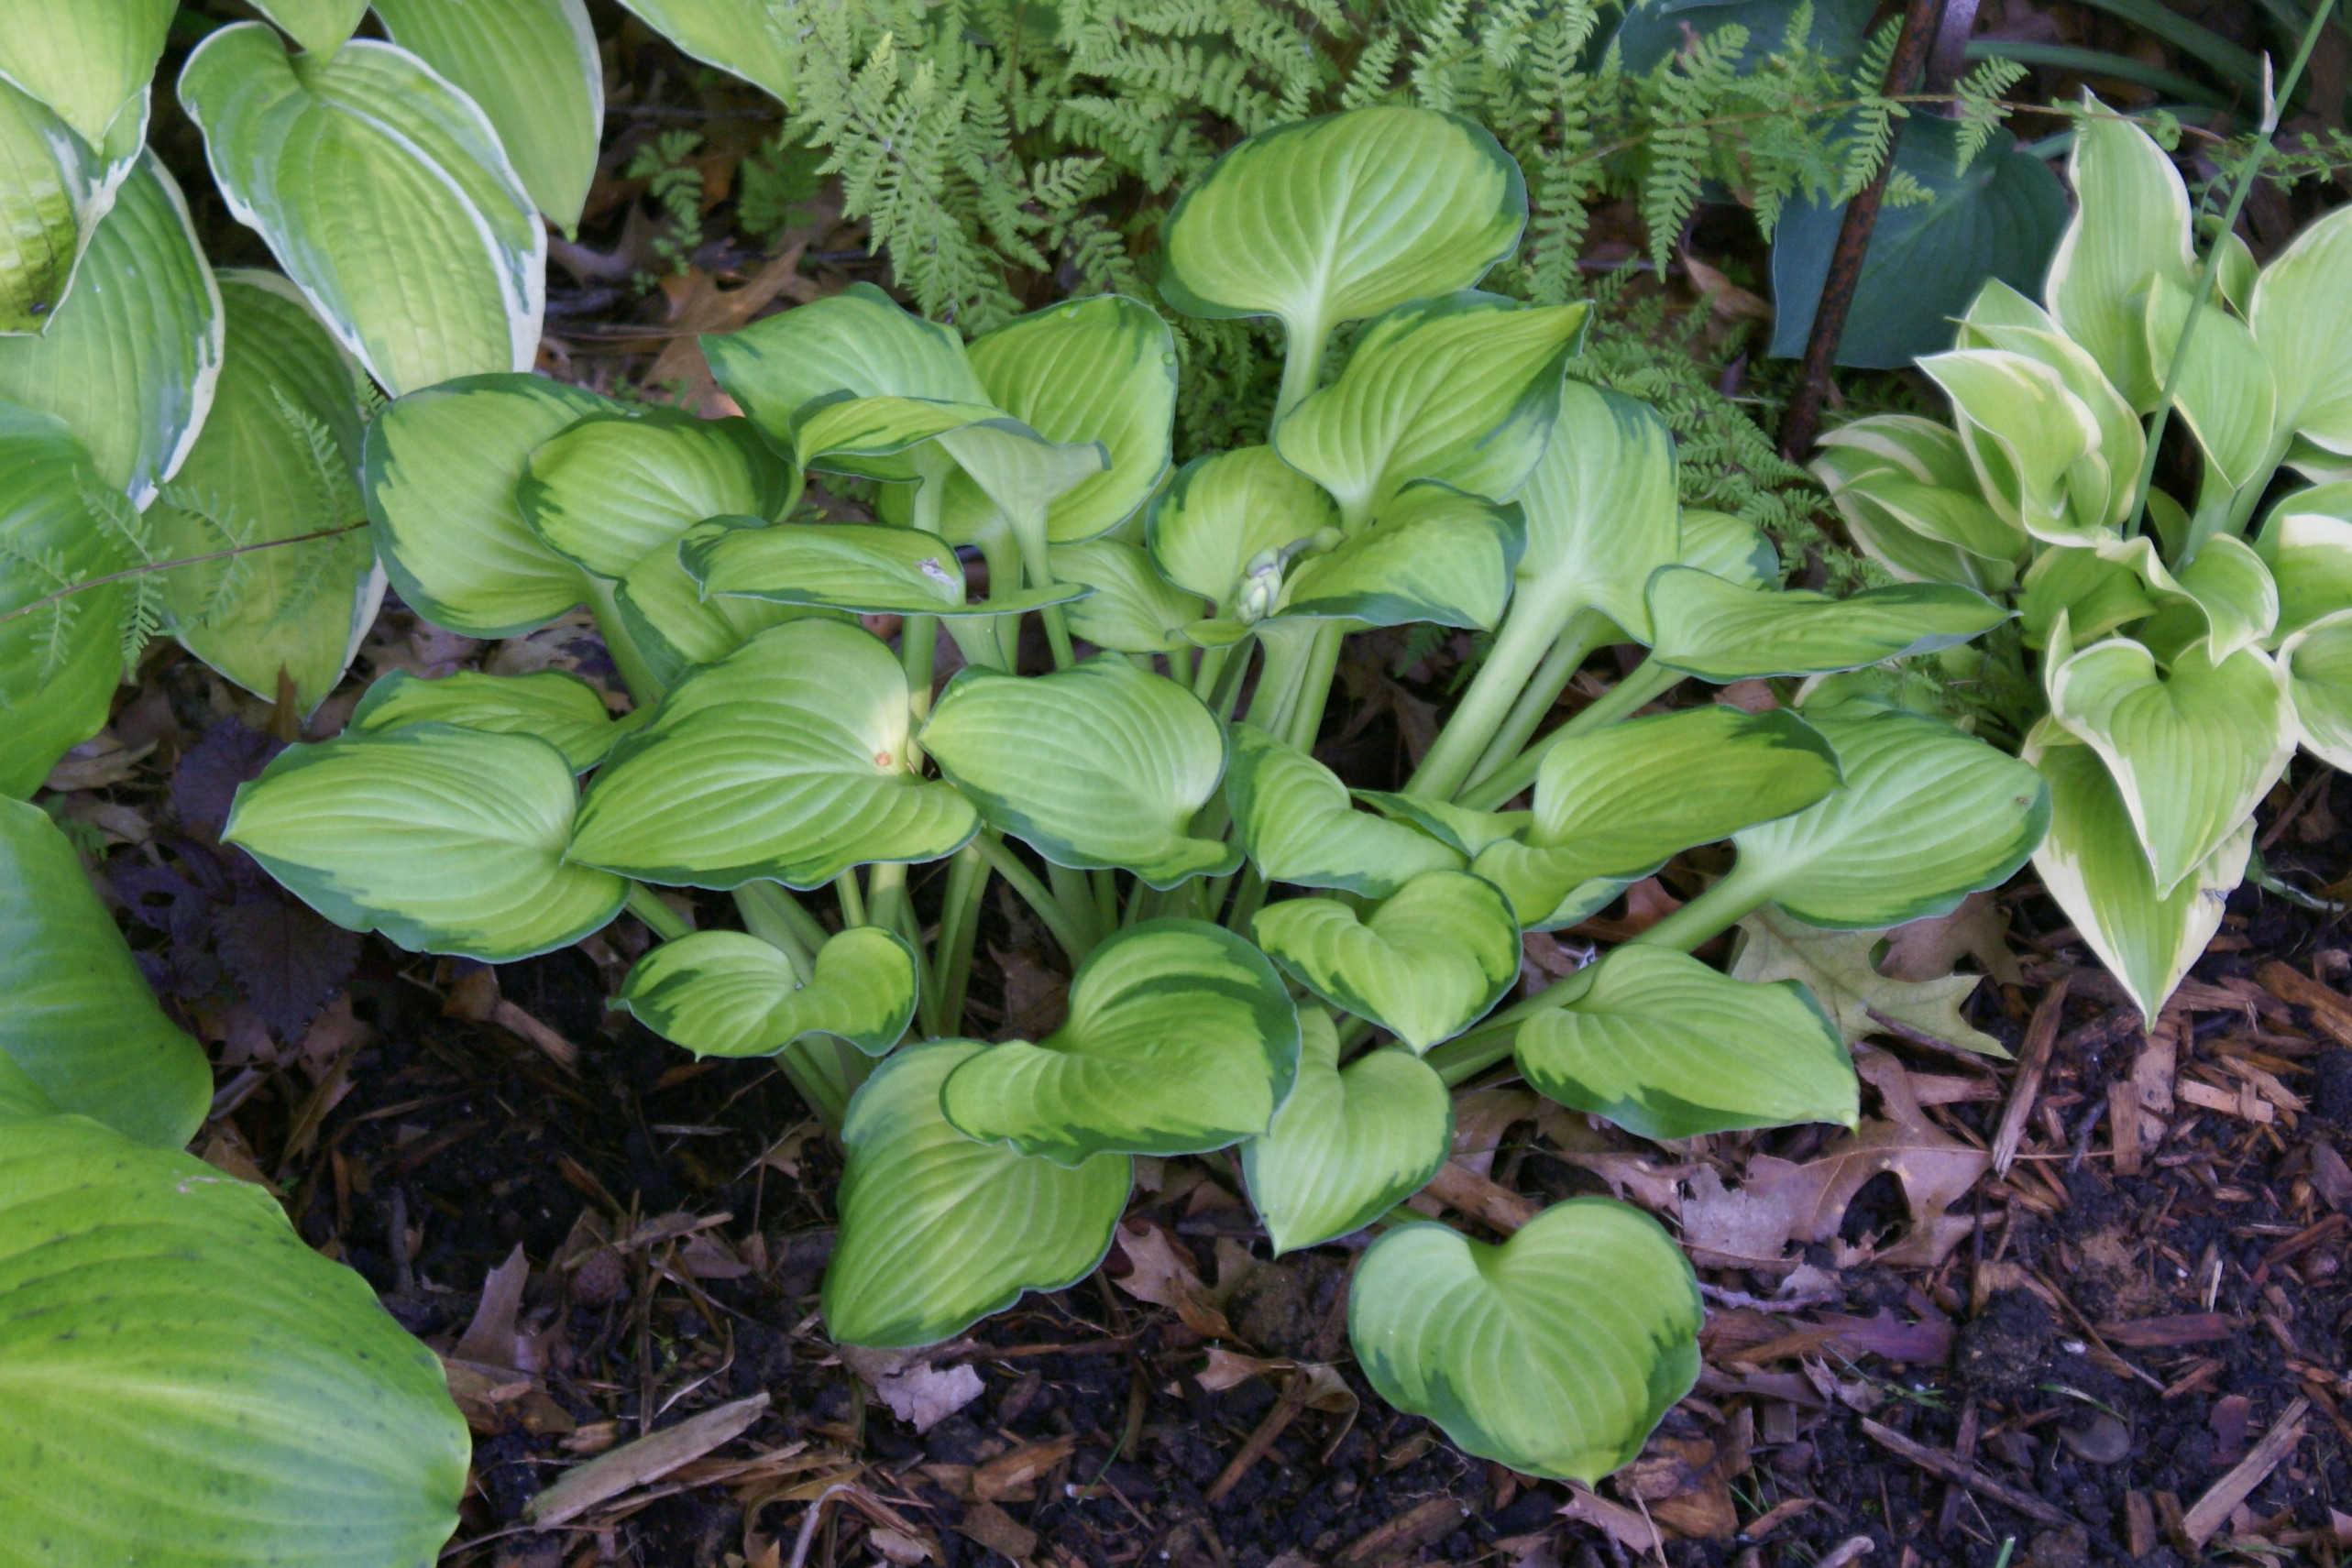 Hosta 'Wylde Green Cream' (2)(08&12)-001